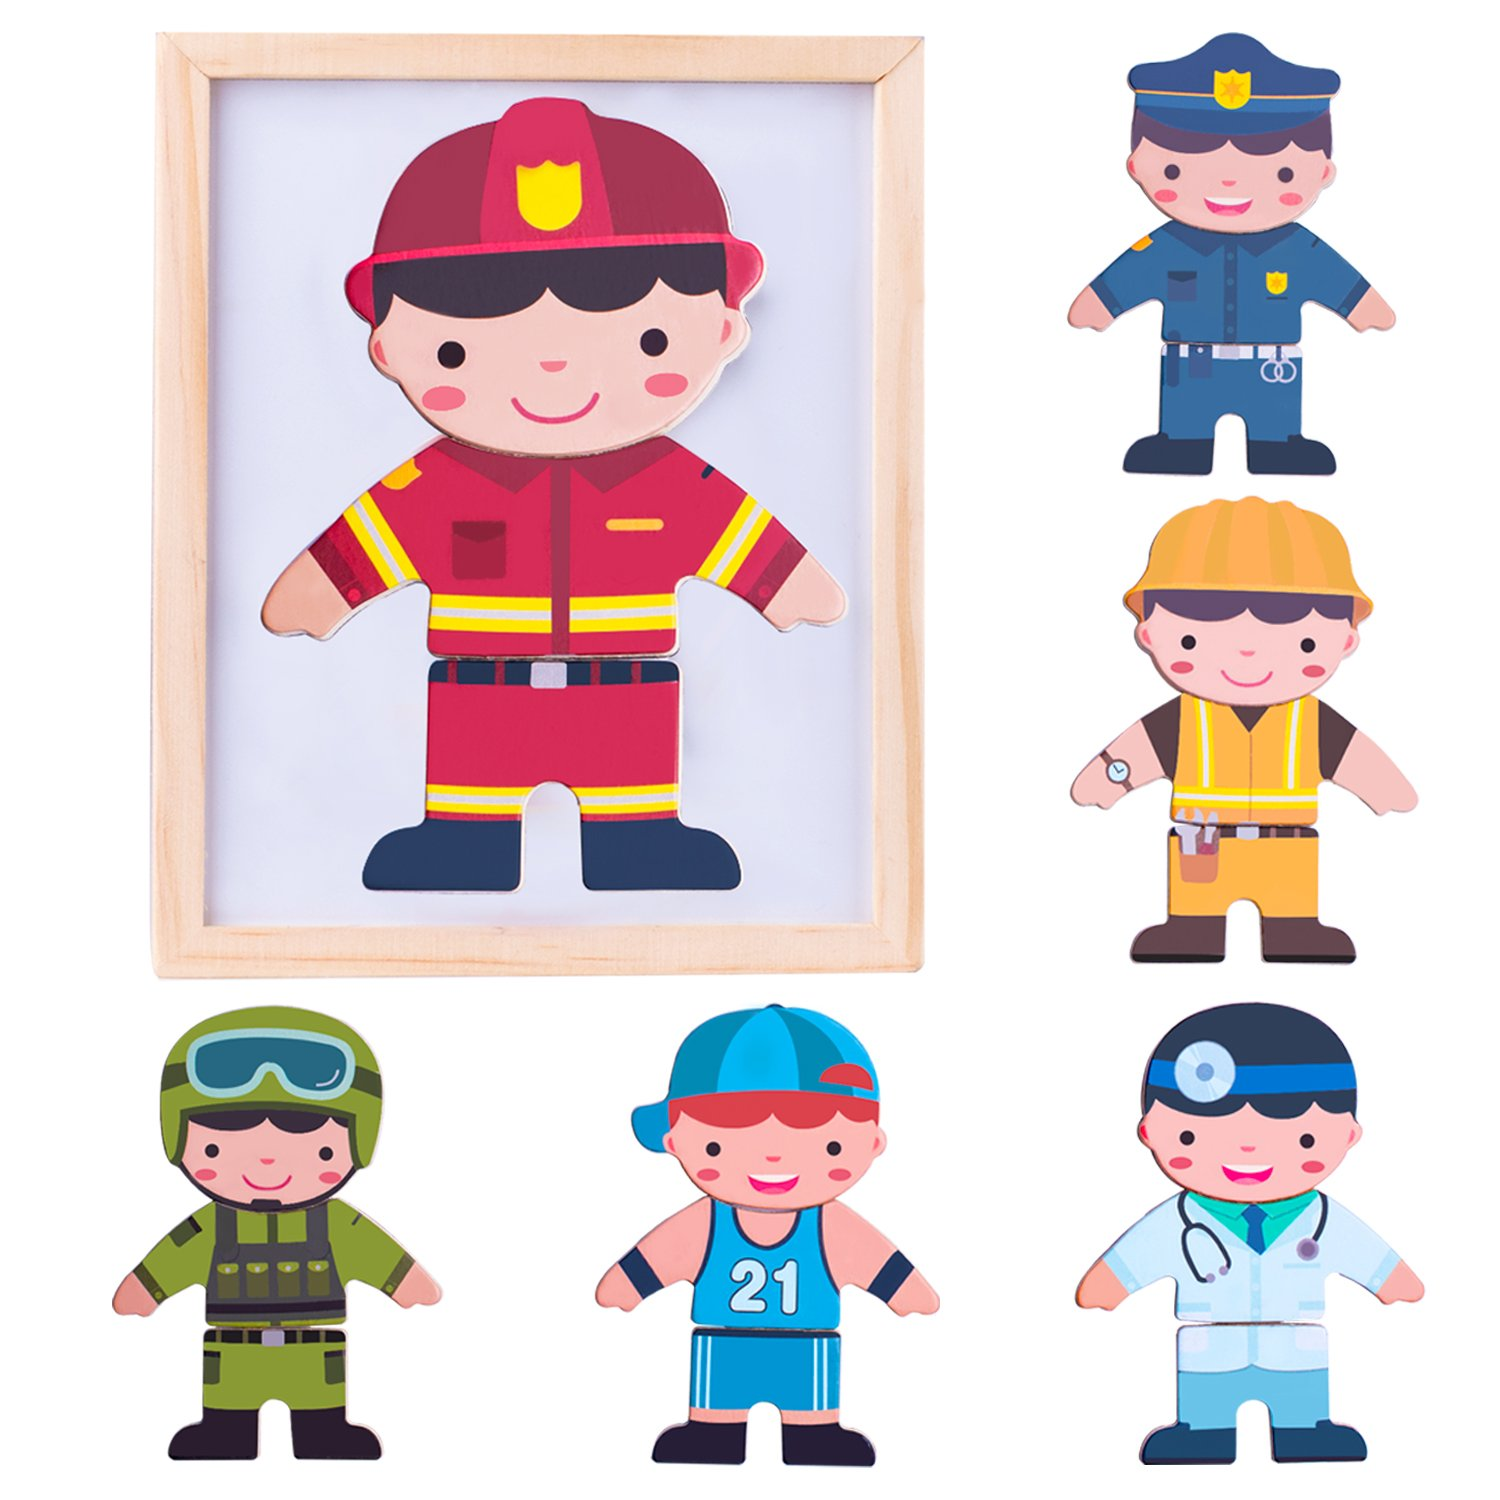 iPlay, iLearn Magnetic Wooden Dolls, Matching Dress-Up Game, Jigsaw Puzzle Toys, Fireman, Policeman, Fridge Magnets, Smart Educational Learning Gift for Ages 2, 3, 4 Years Old, Kids, Boys & Girls